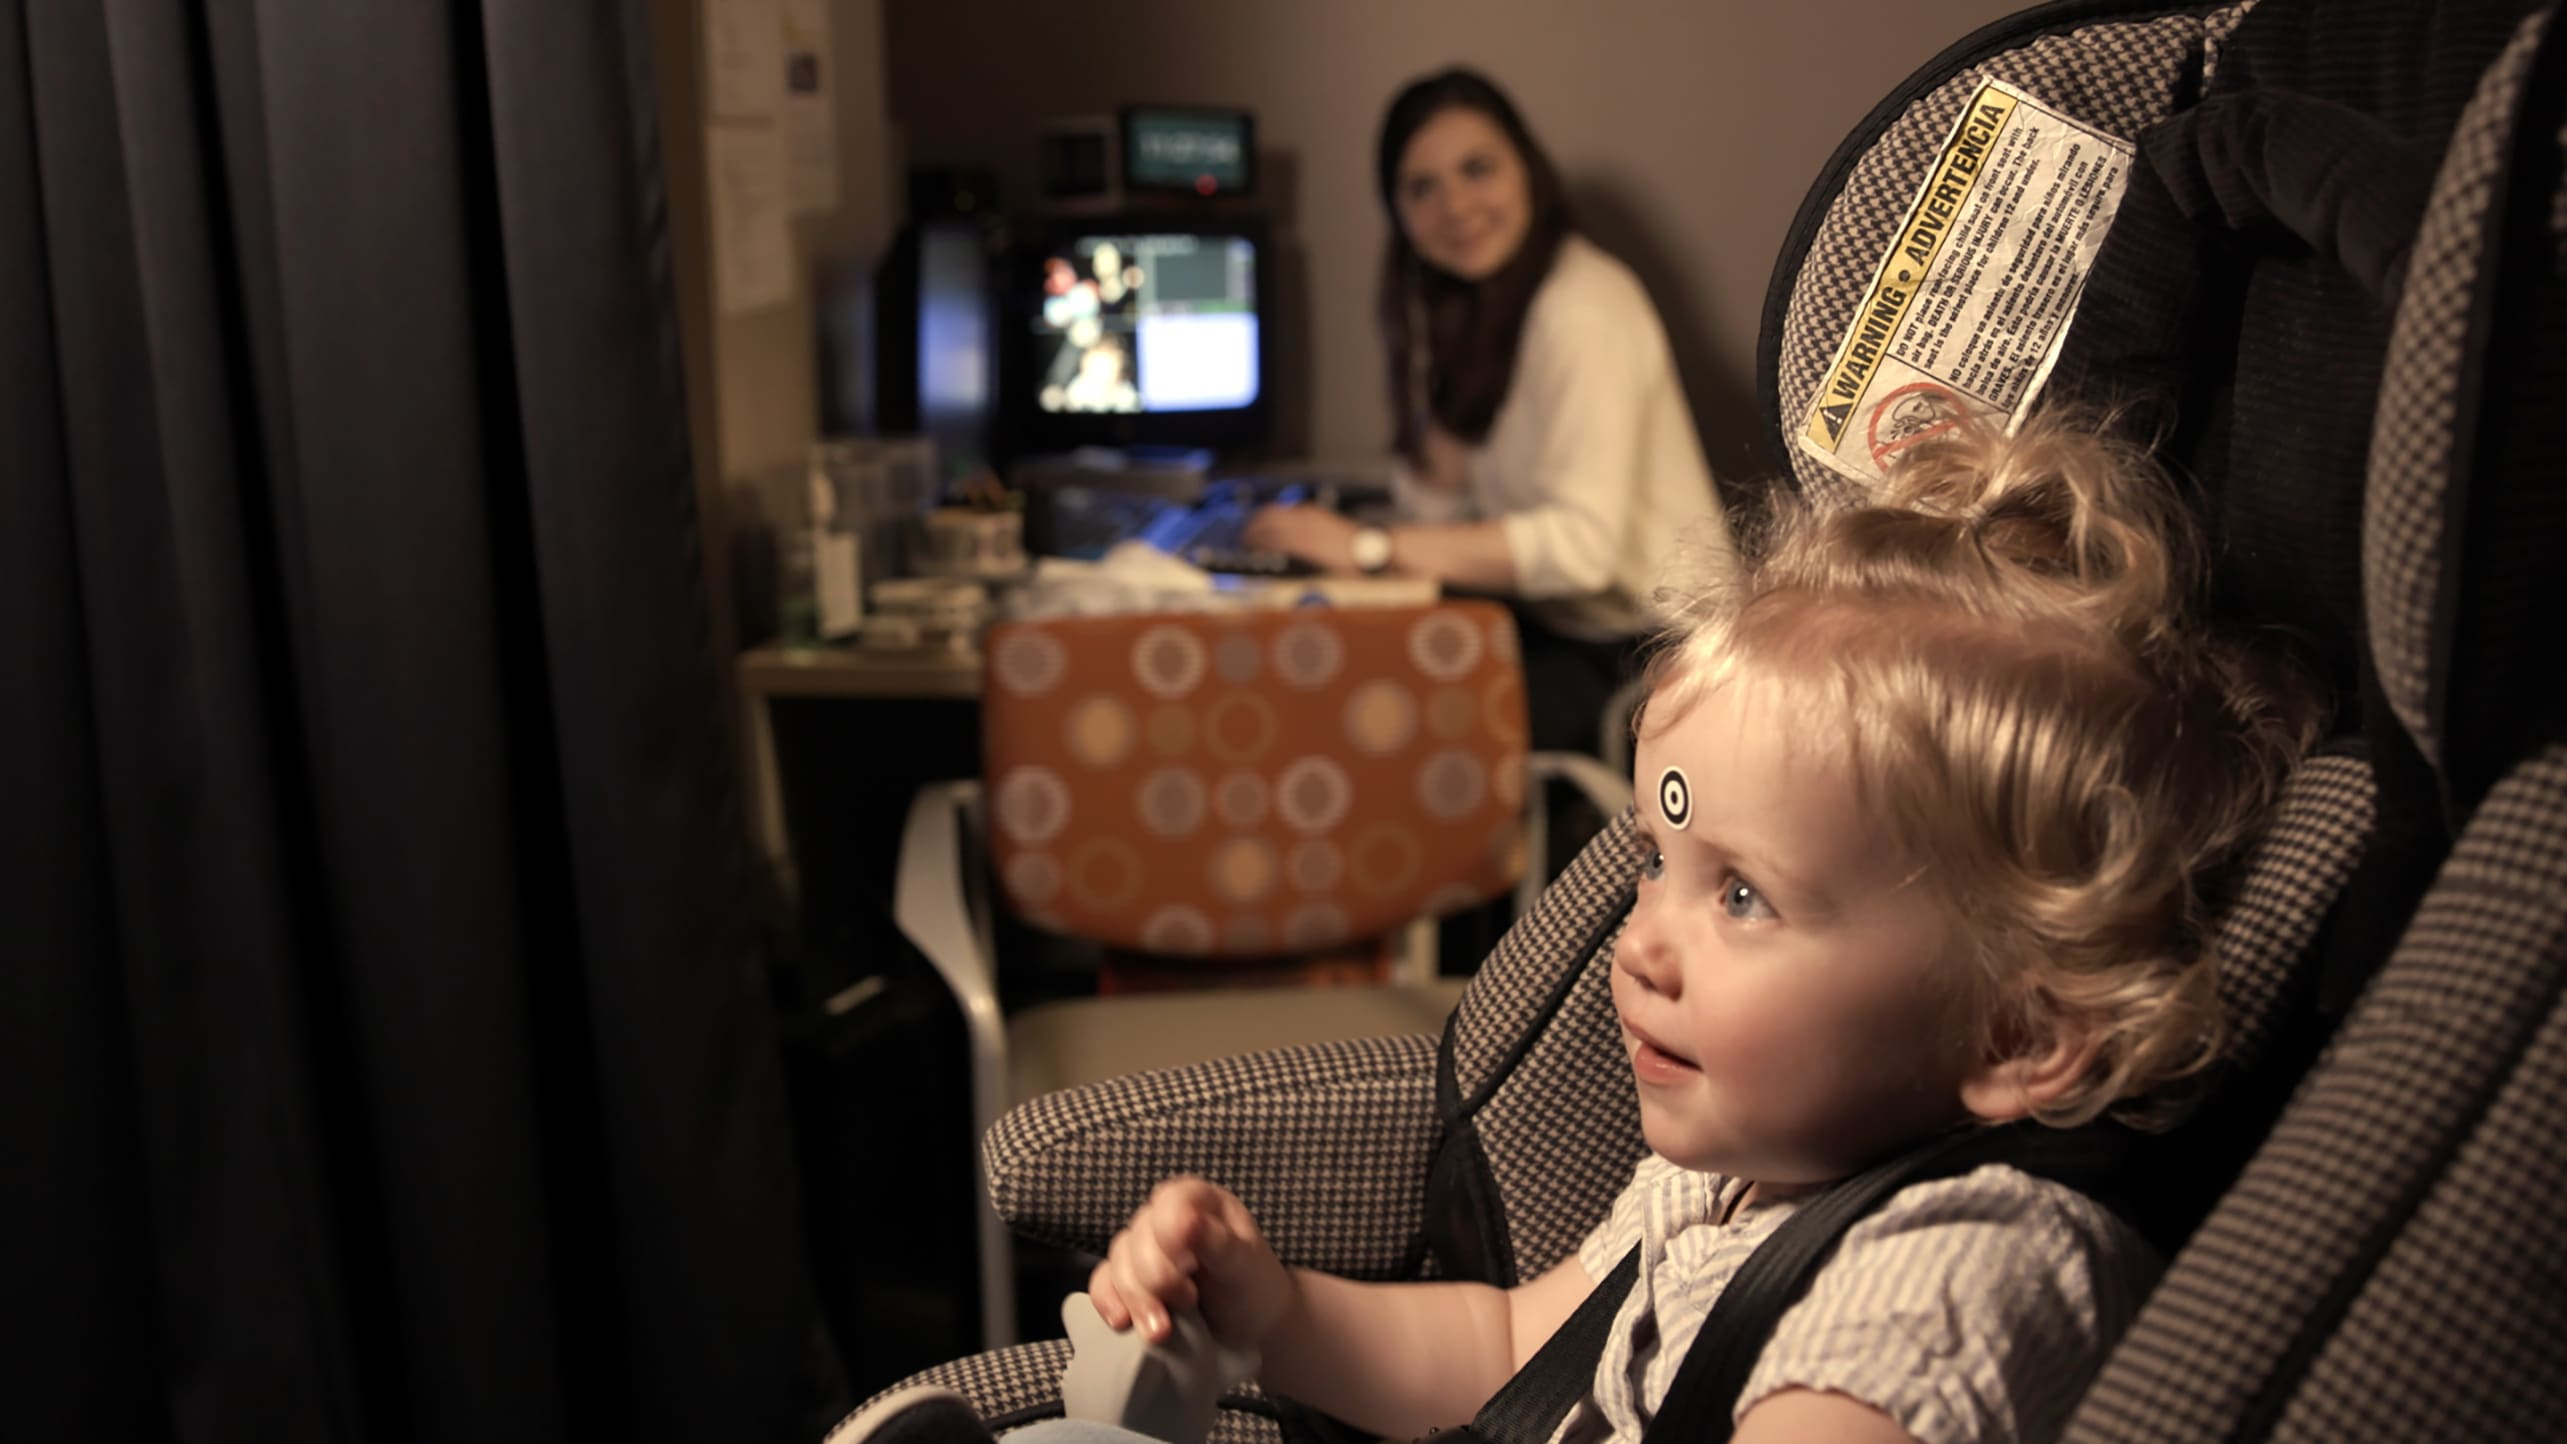 A baby undergoes eye-tracking screening for early detection of autism.